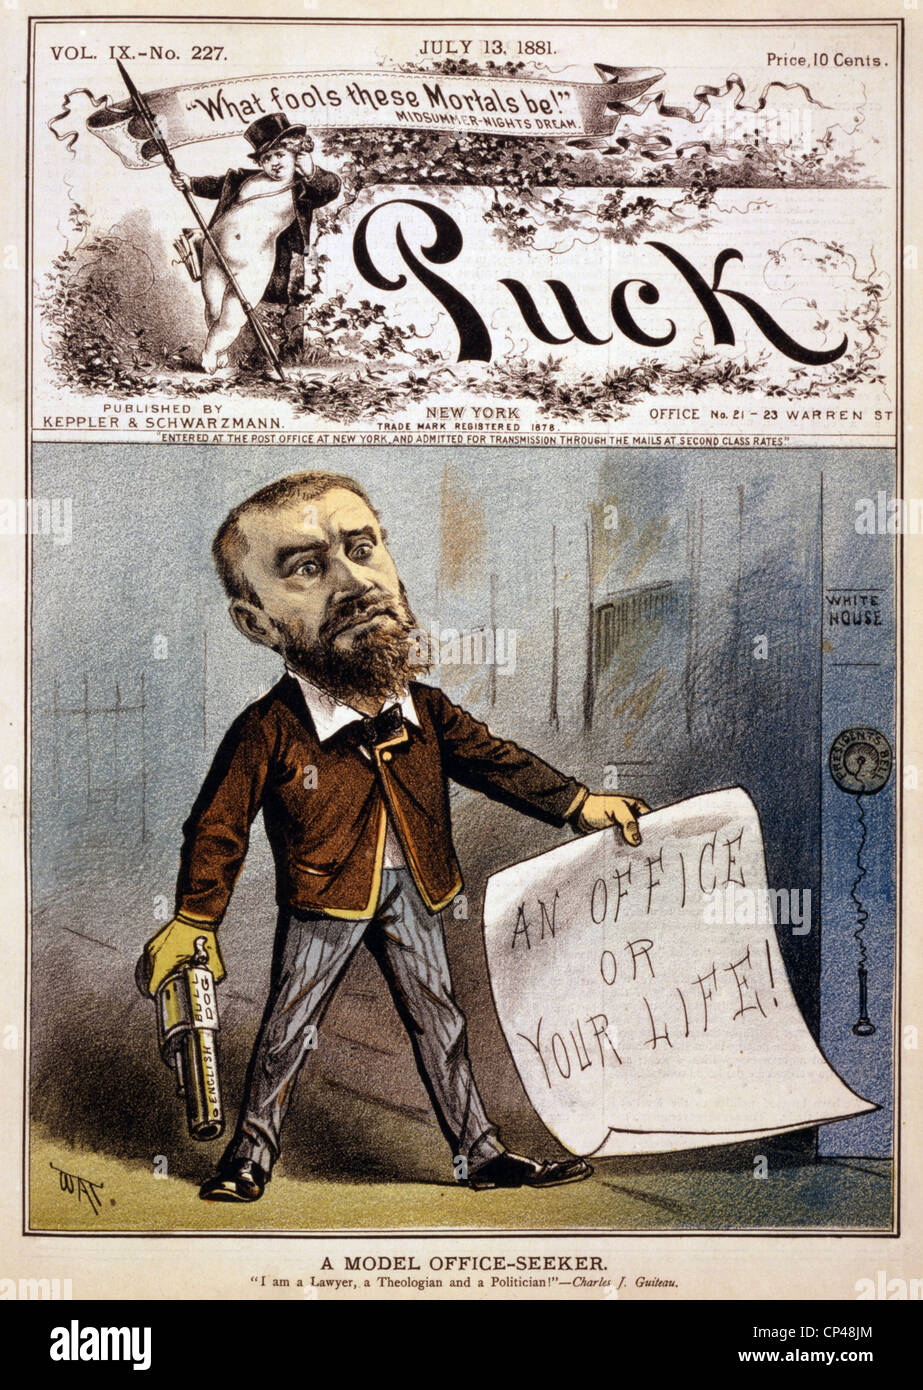 Cartoon showing presidential assassin Charles J. Guiteau holding pistol and paper reading an office or your life - Stock Image